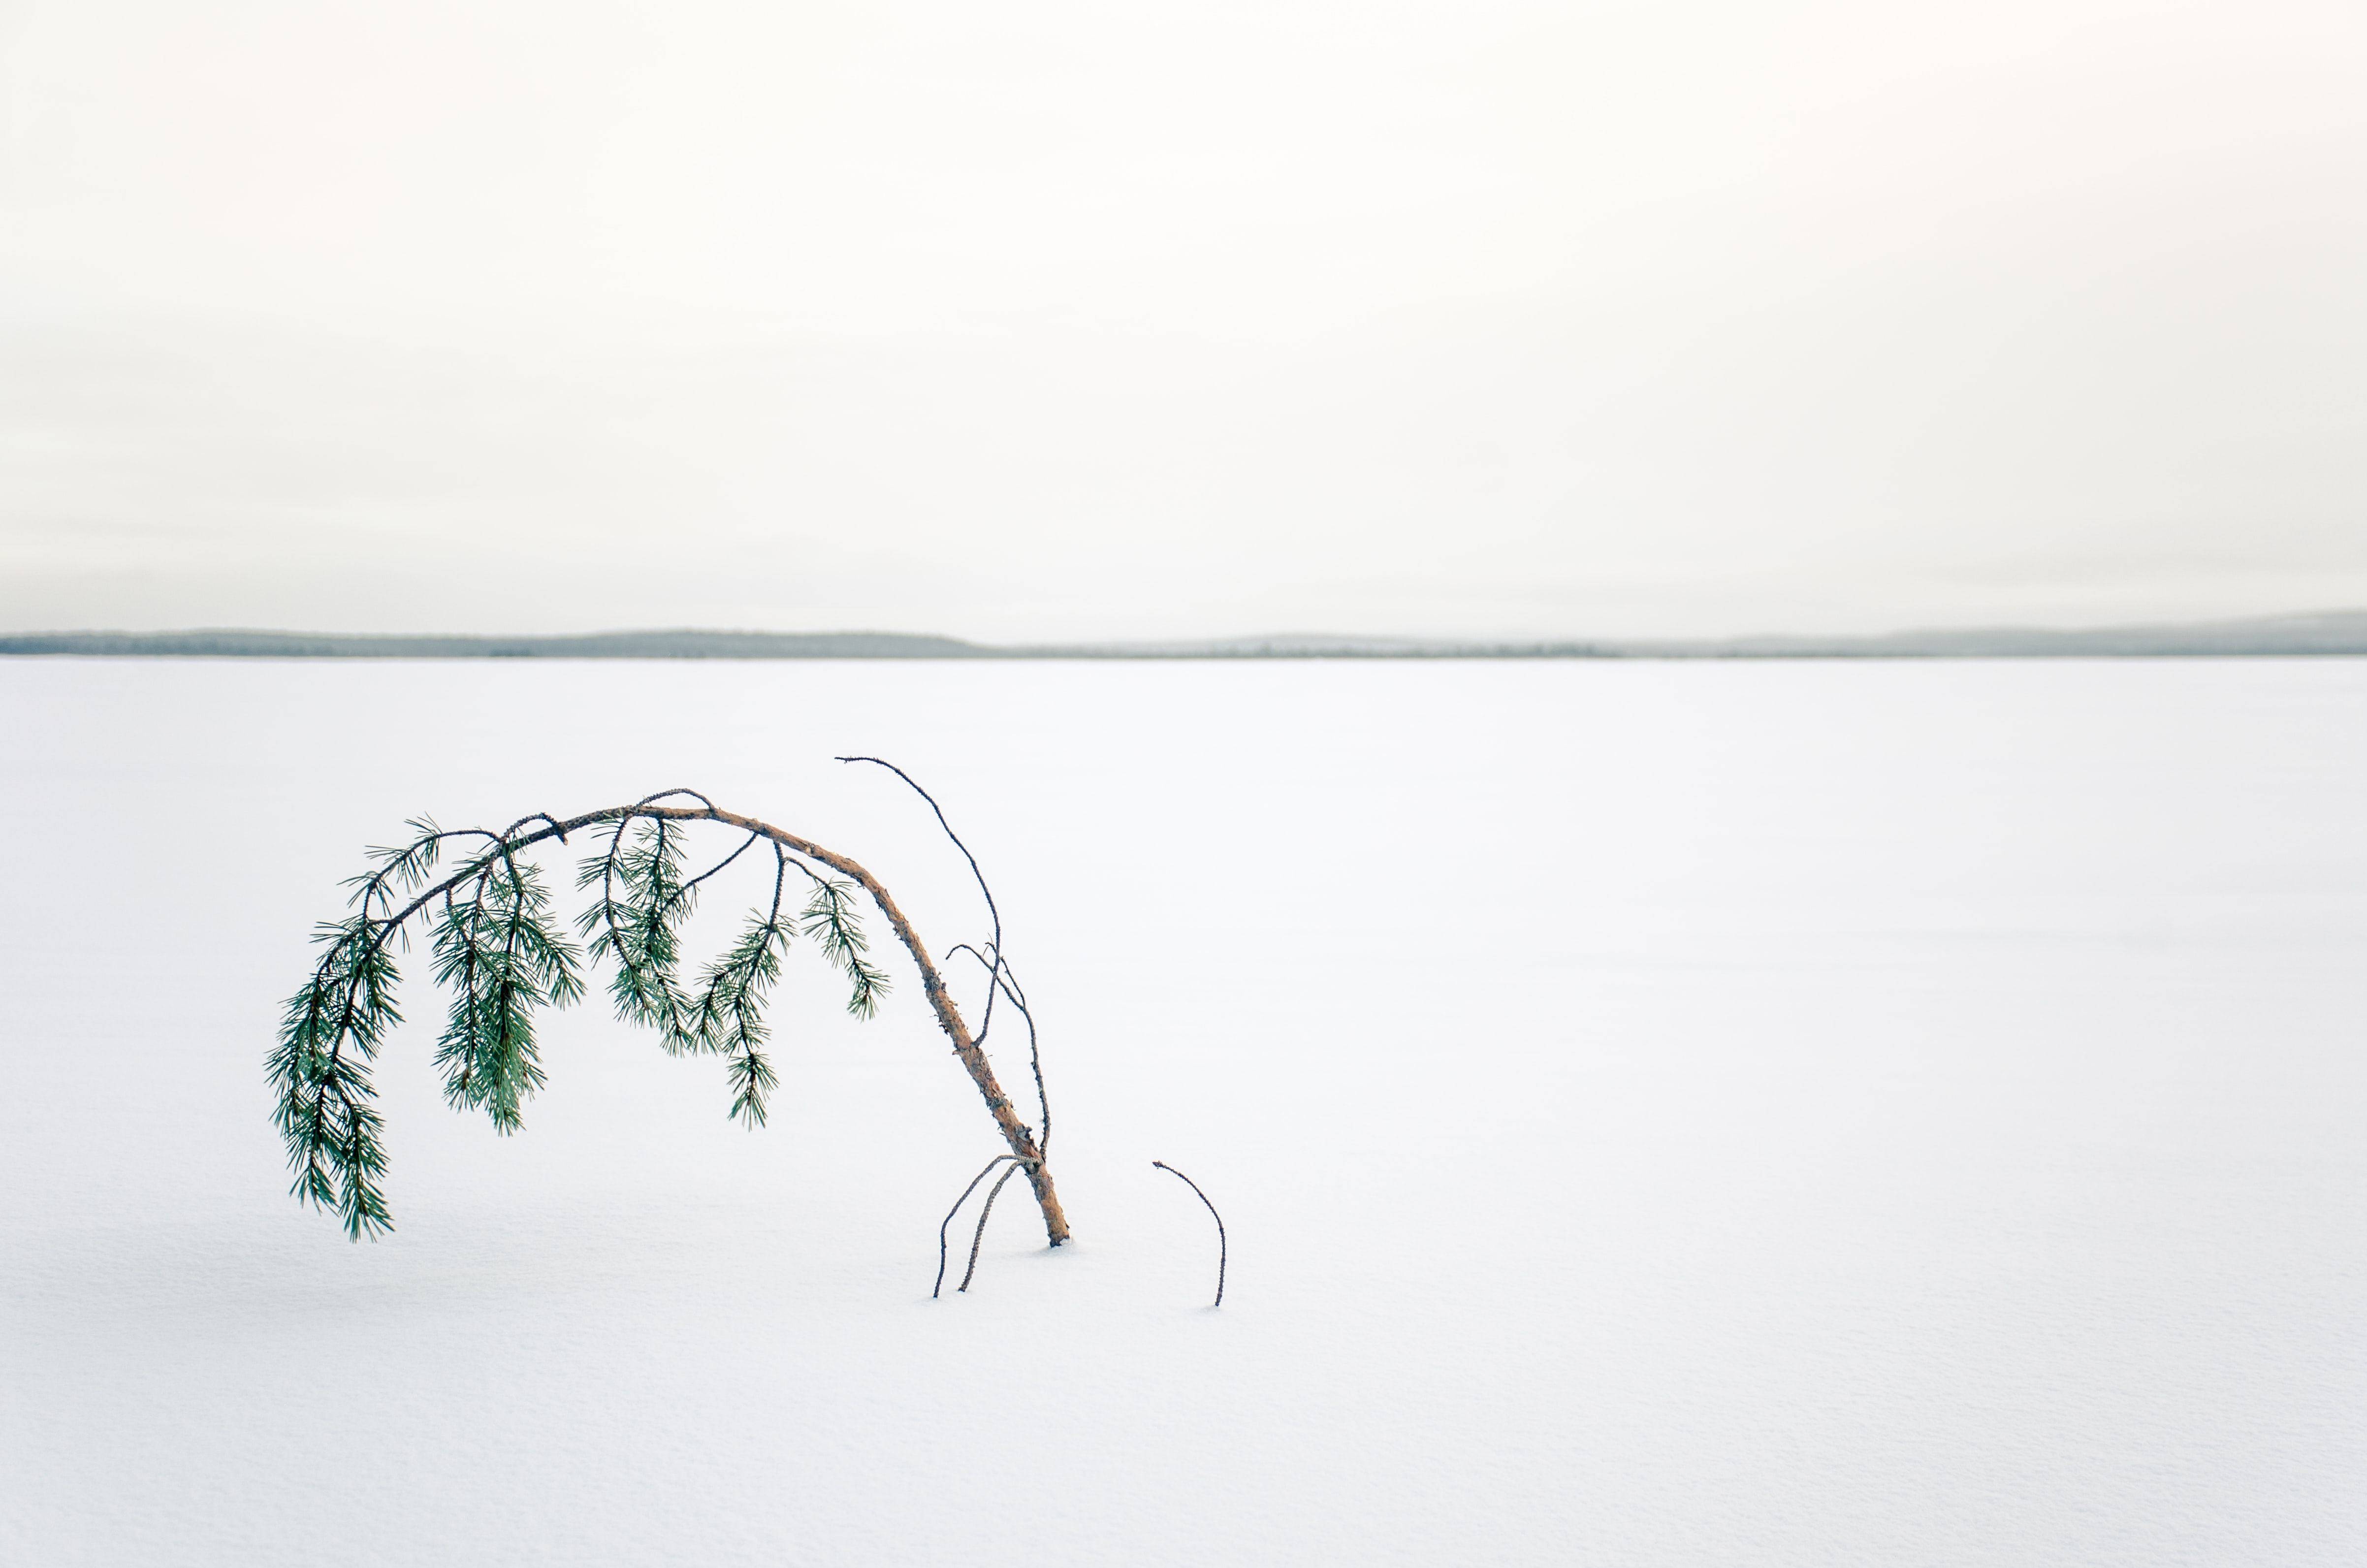 tree in the middle of snow covered land